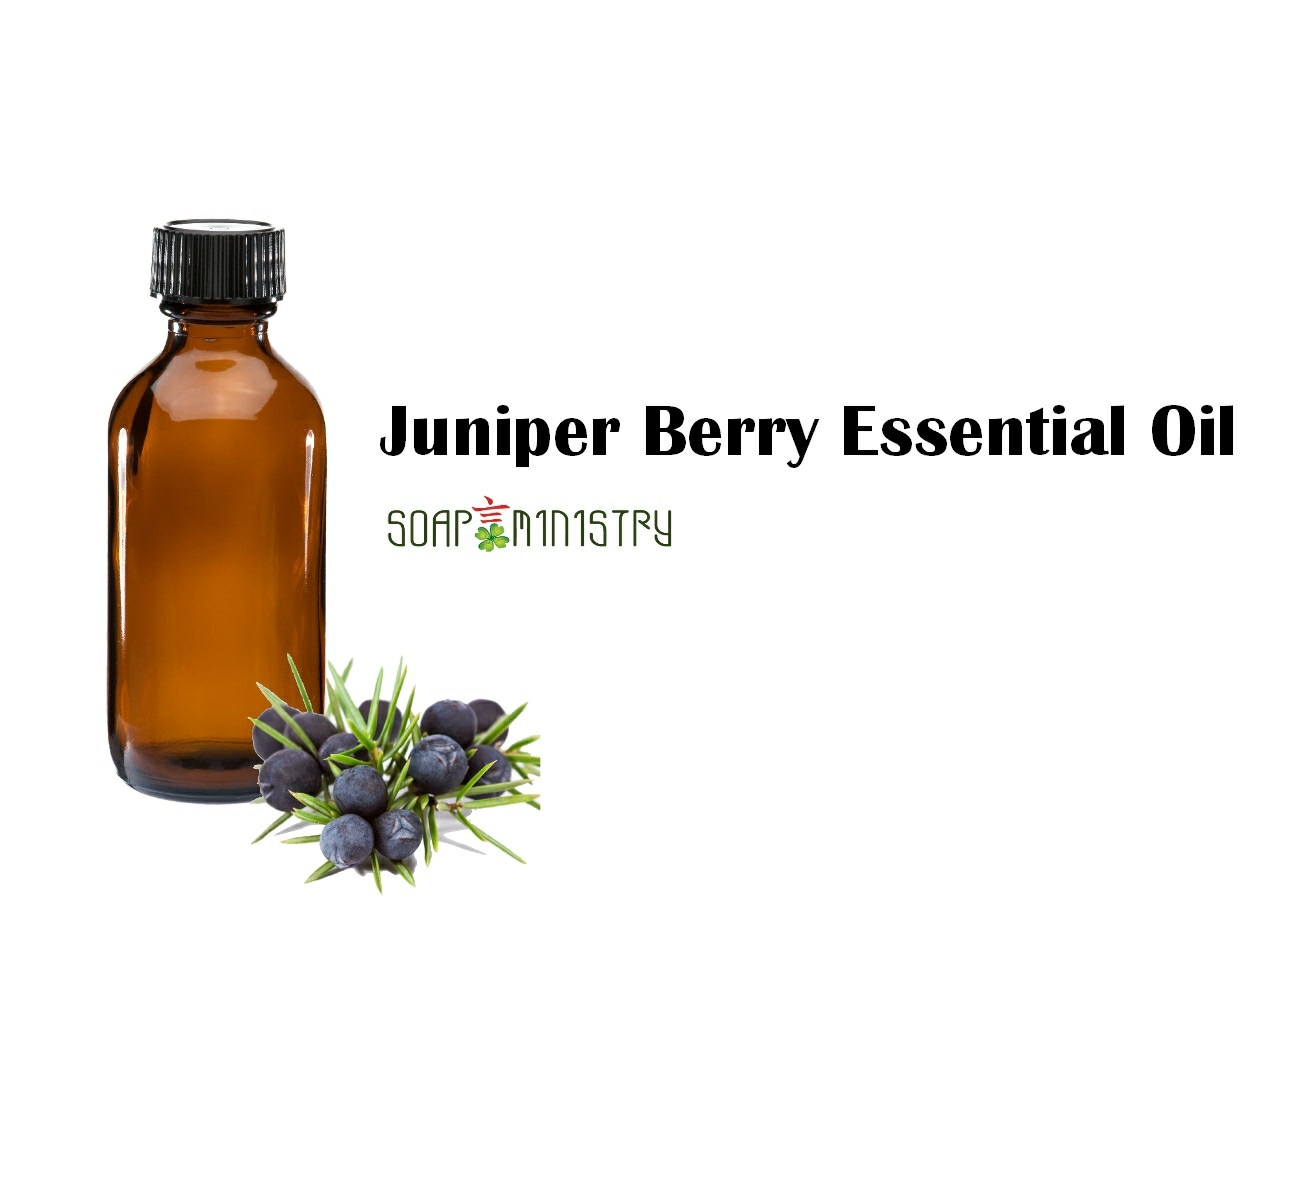 Juniper Berry Essential Oil 1L